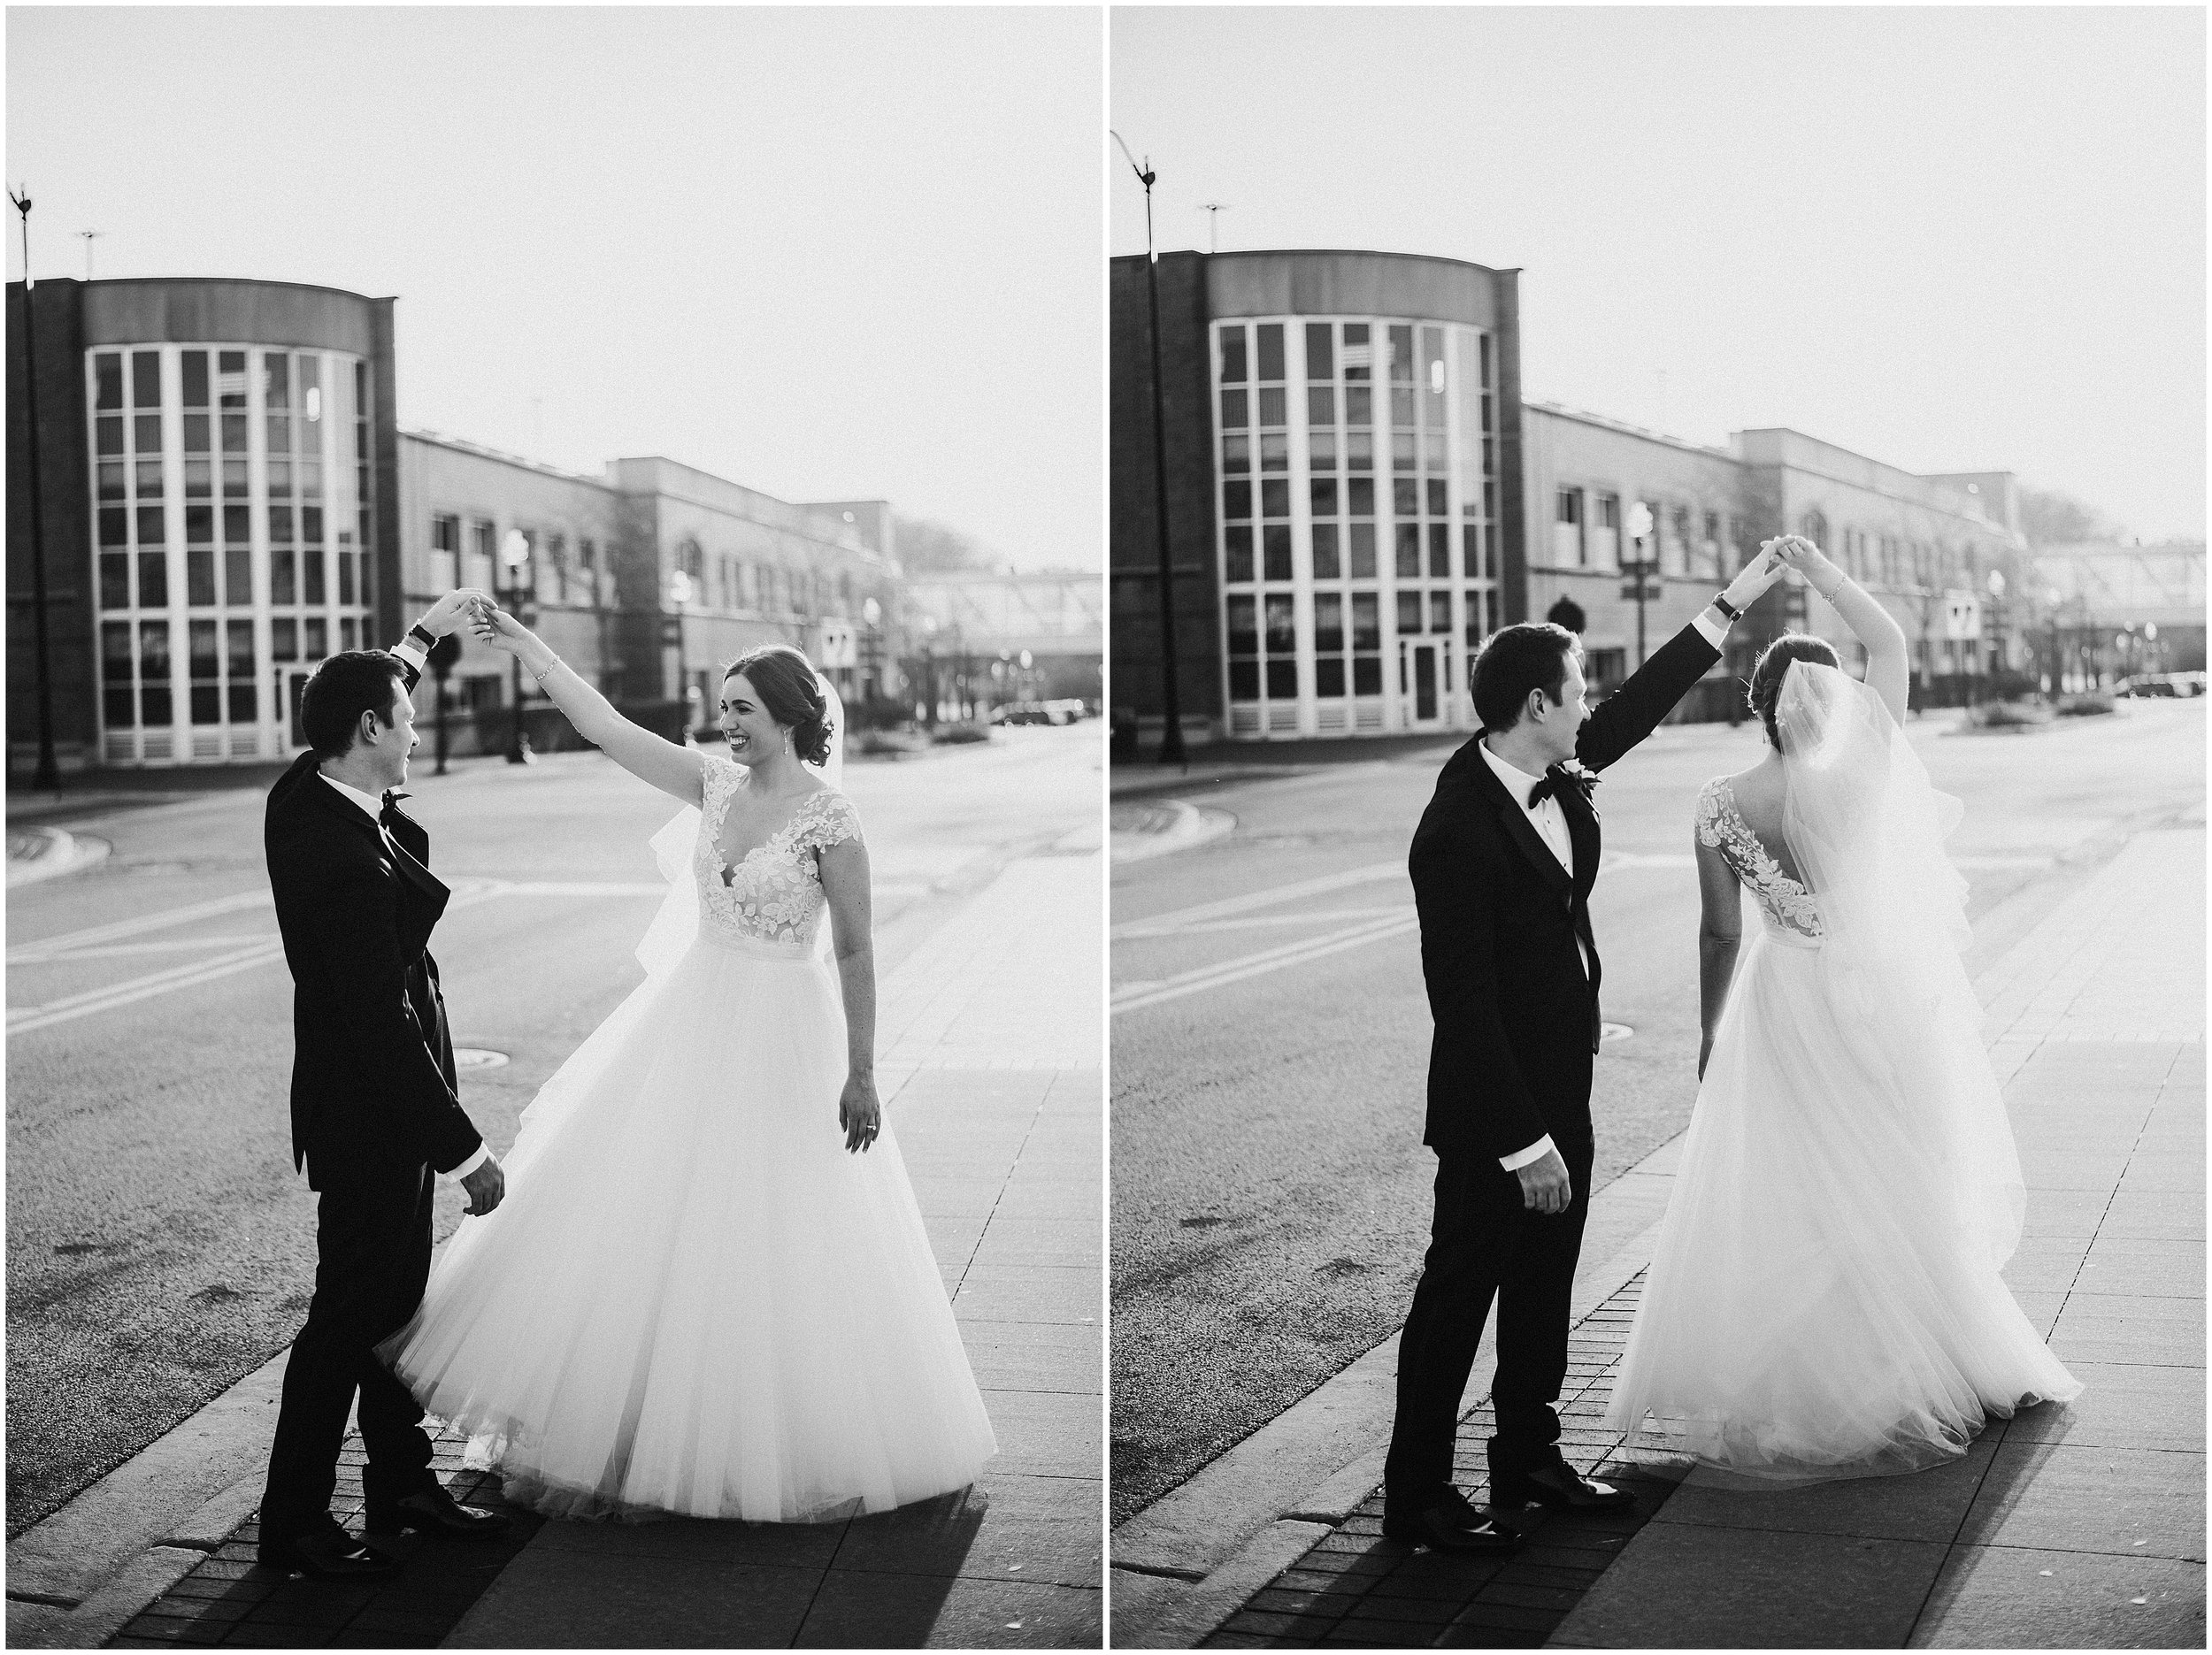 Candace Sims Photography | Brittany and Andrew | Elegant Vintage Wedding | The Haight, Elgin IL